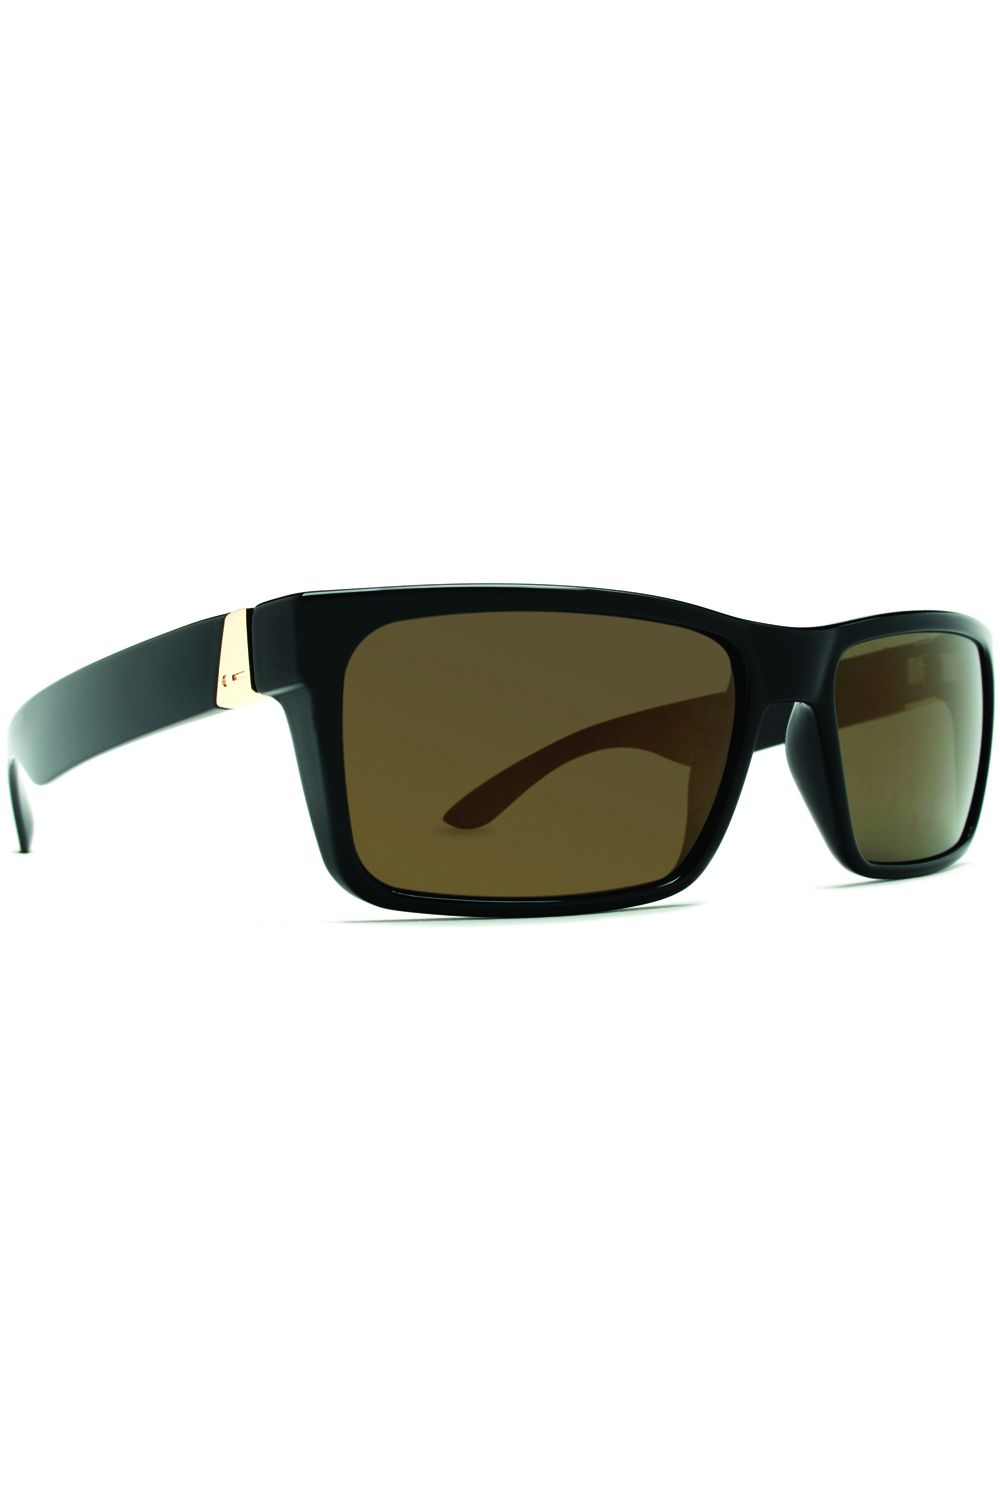 Oculos Dot Dash LADS Black / Gold Chrome